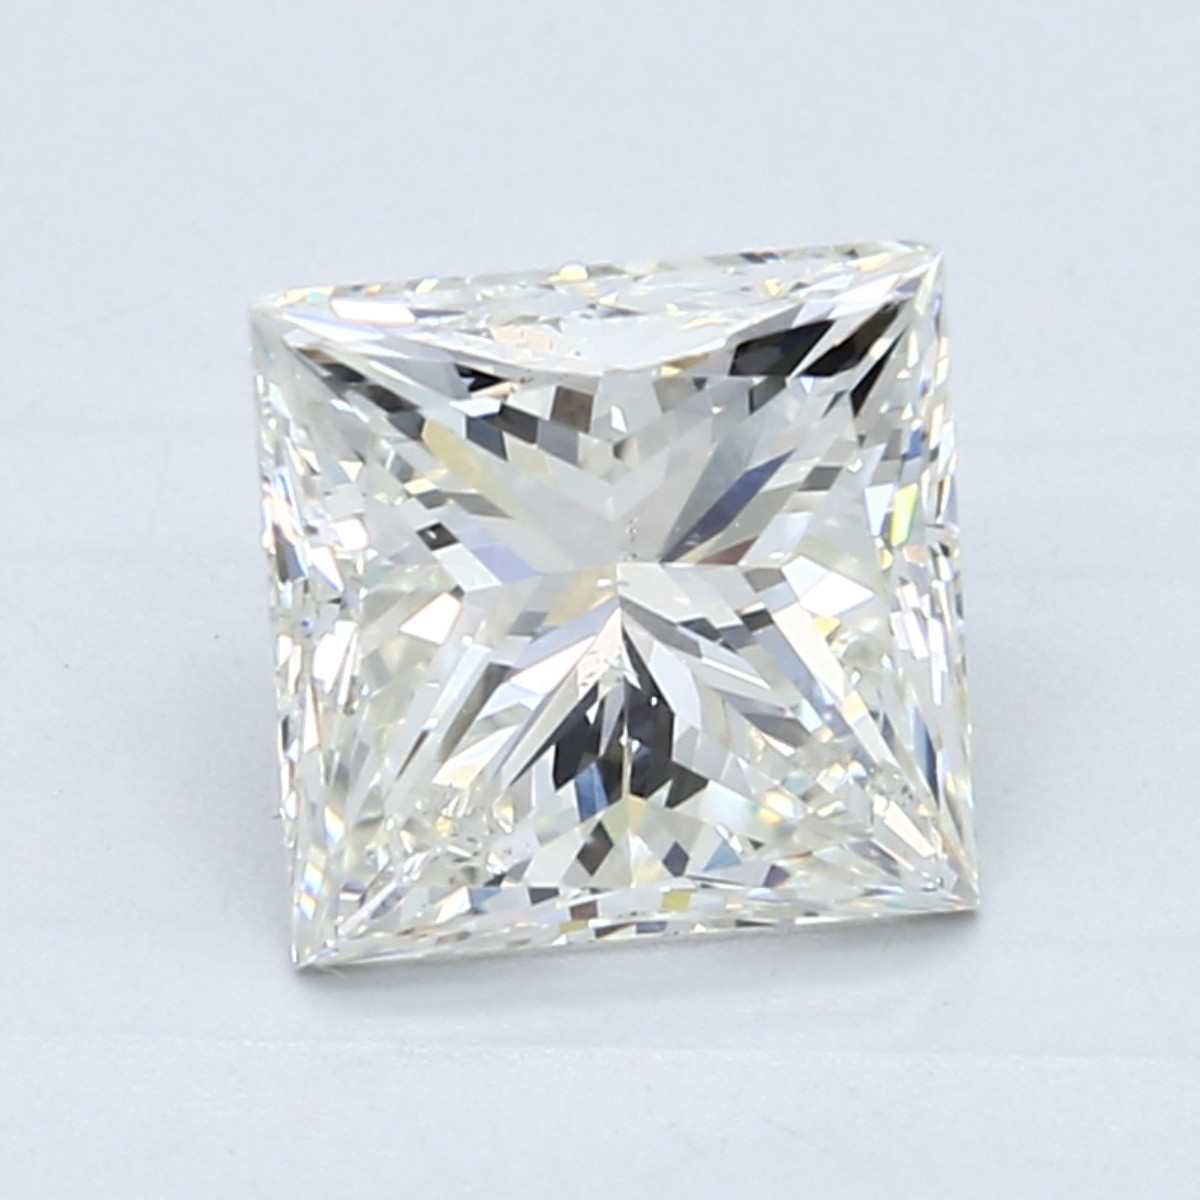 2.5 carat K color princess cut diamond